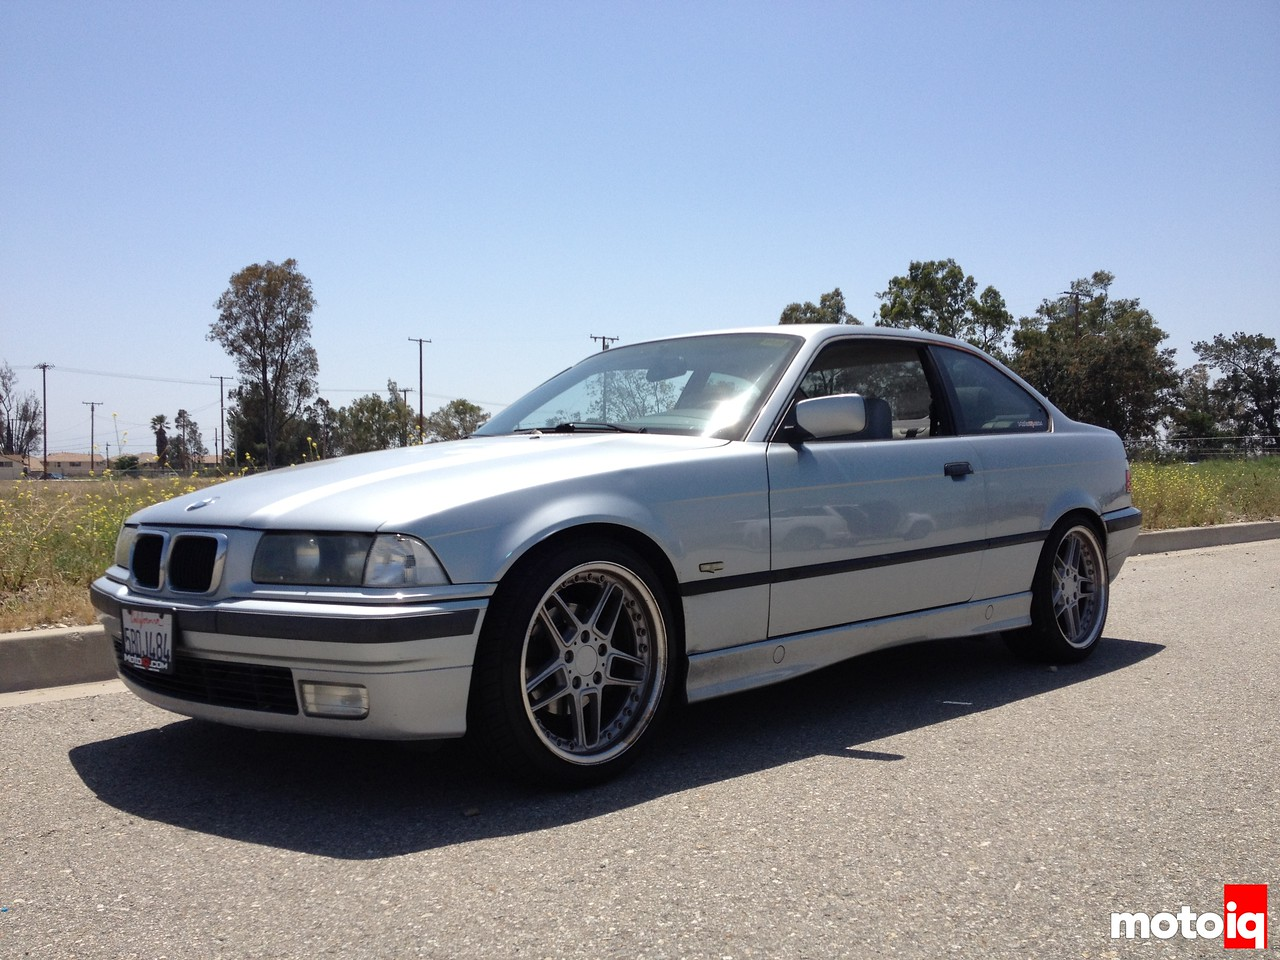 Project BMW E36 323is, Building the Poor Man's M3 Part 1